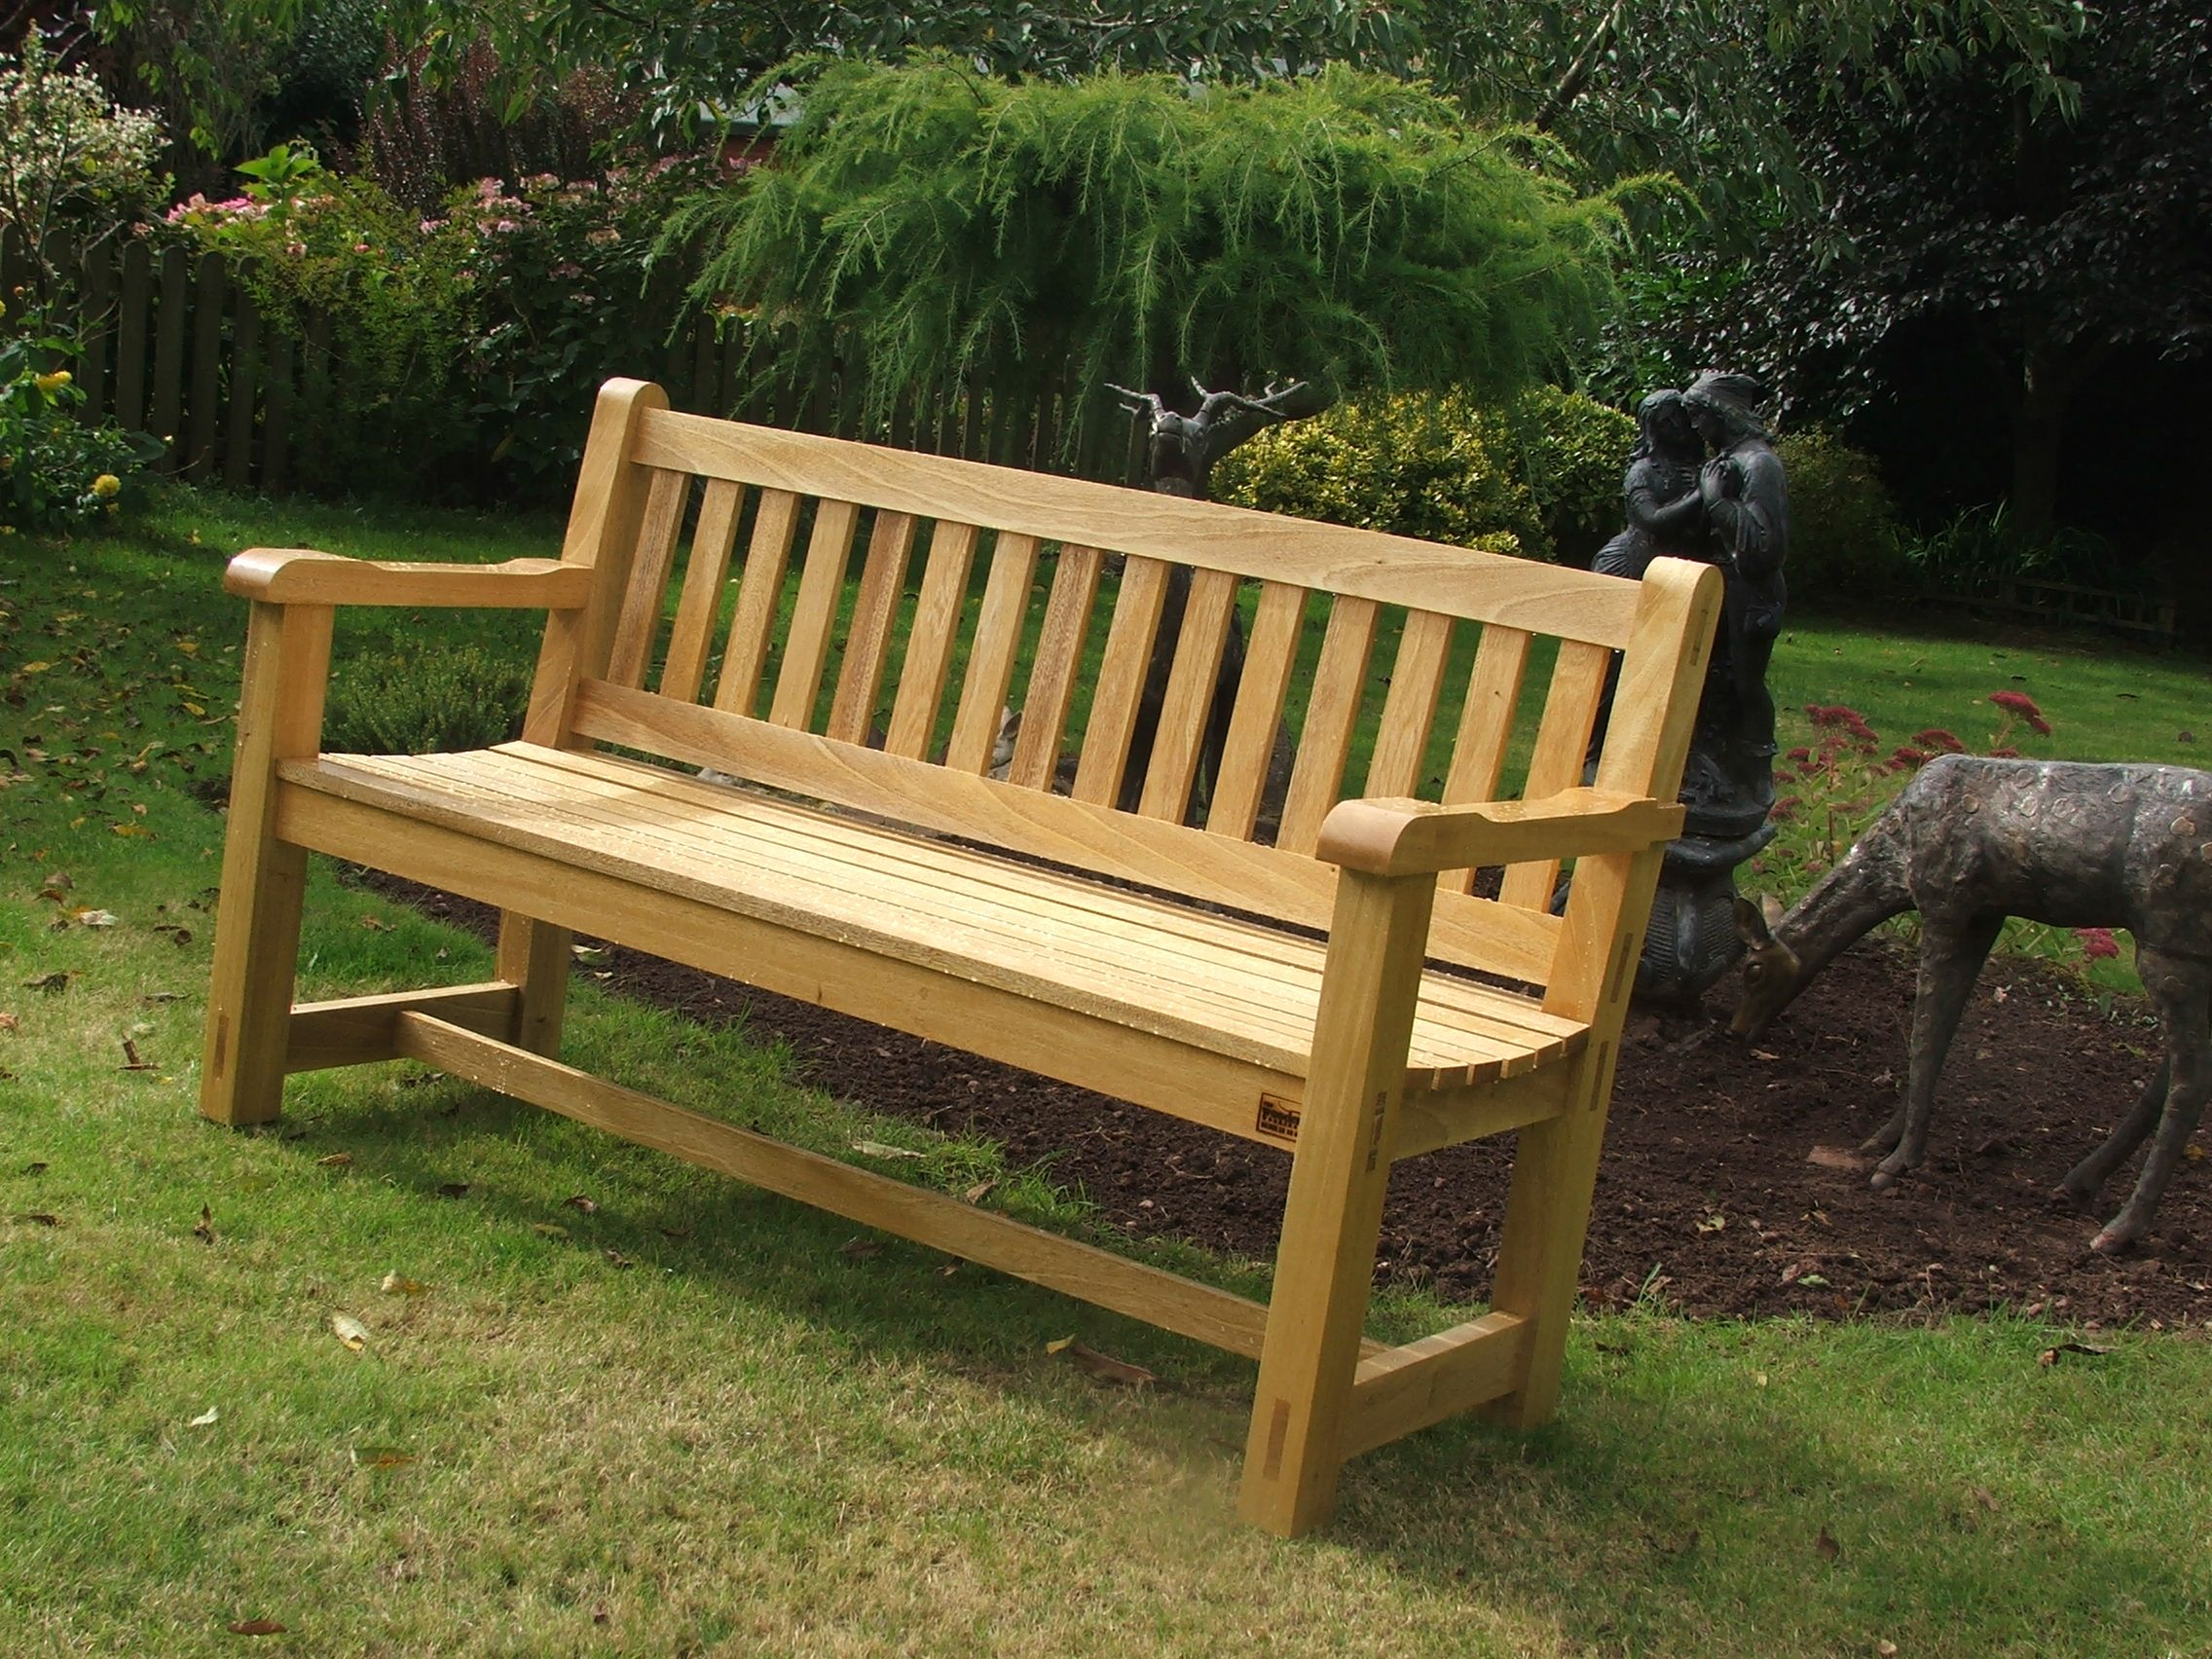 Garden Furniture Handmade 5ft hardwood garden bench handmade bampton devon | garden benches